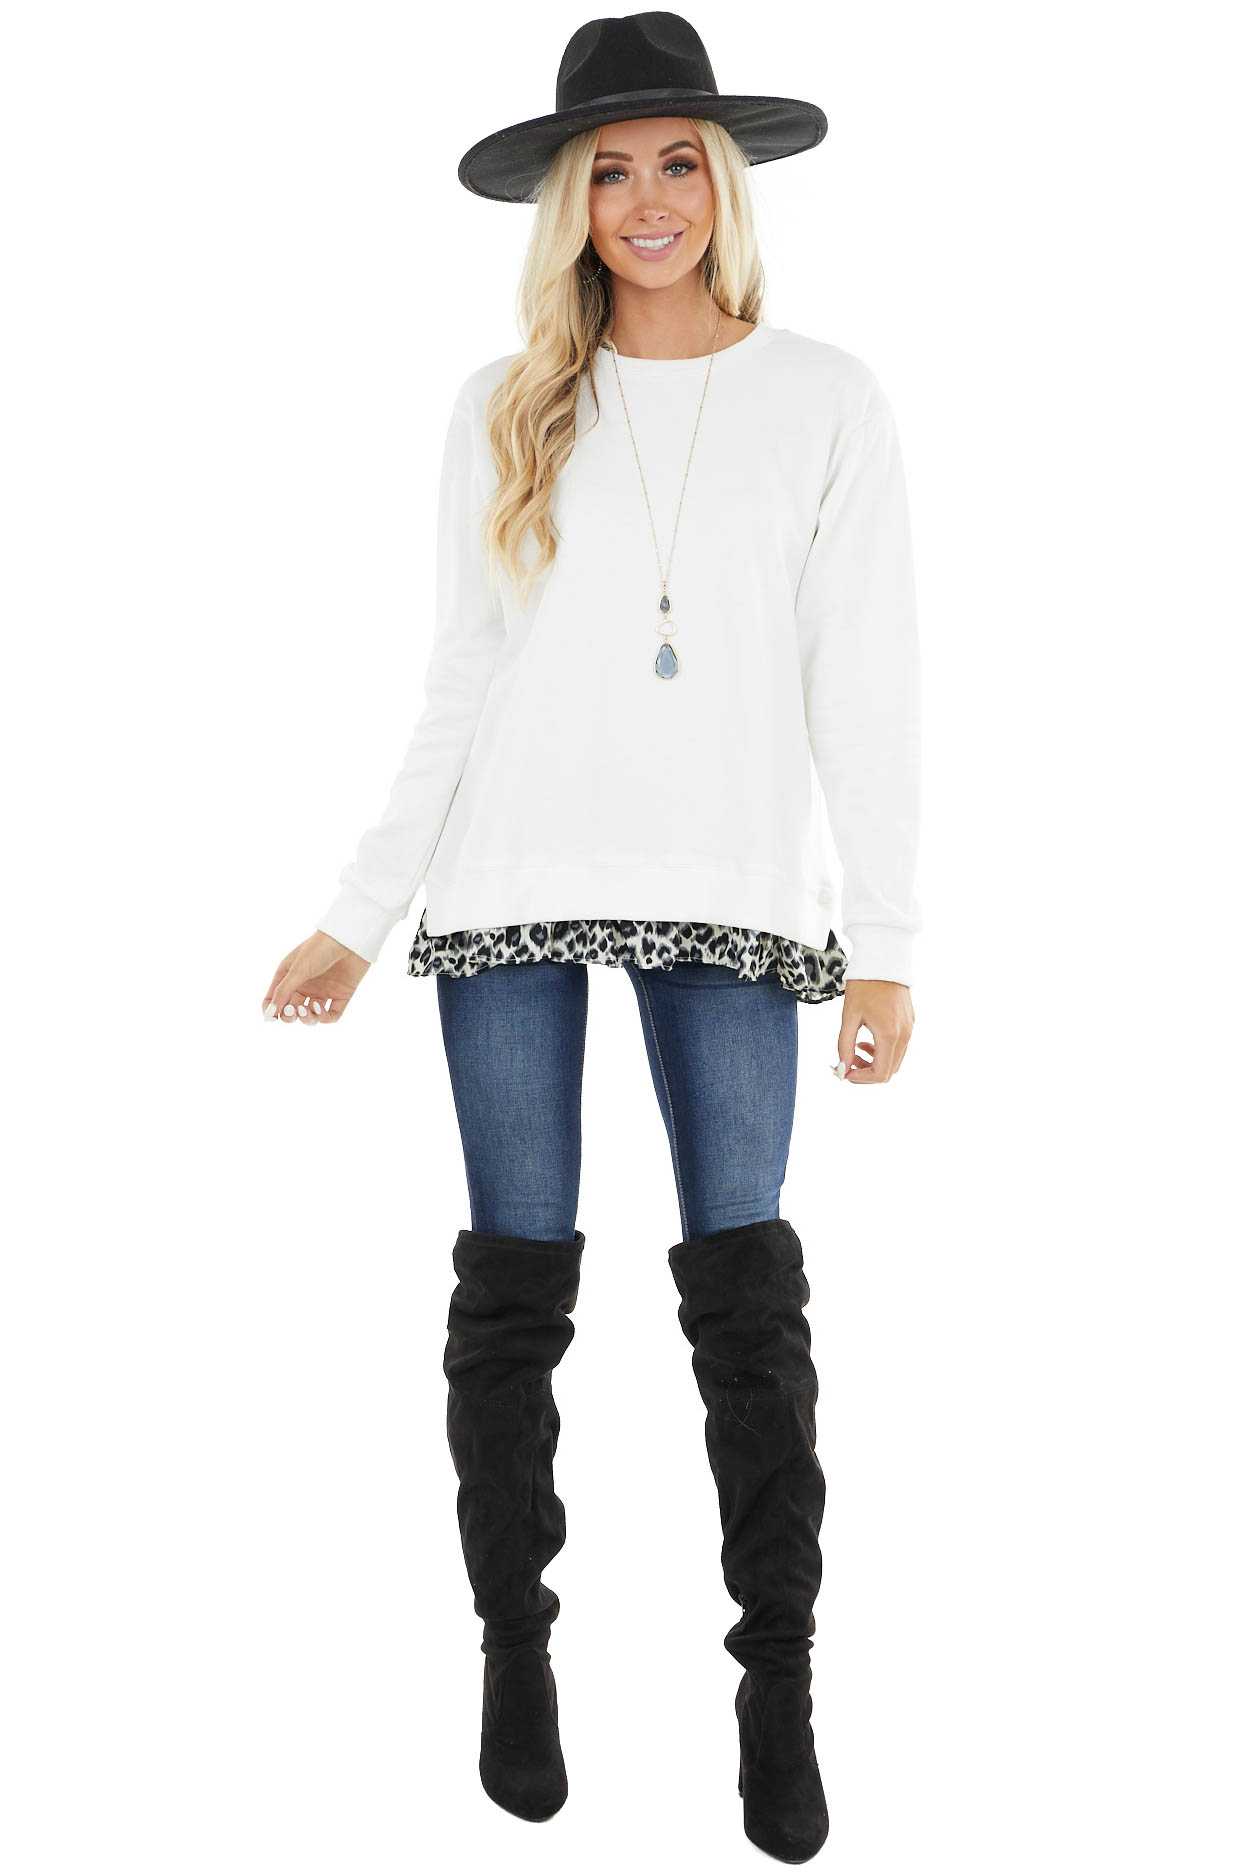 Ivory Knit Sweatshirt with Grey Leopard Hemline Contrast